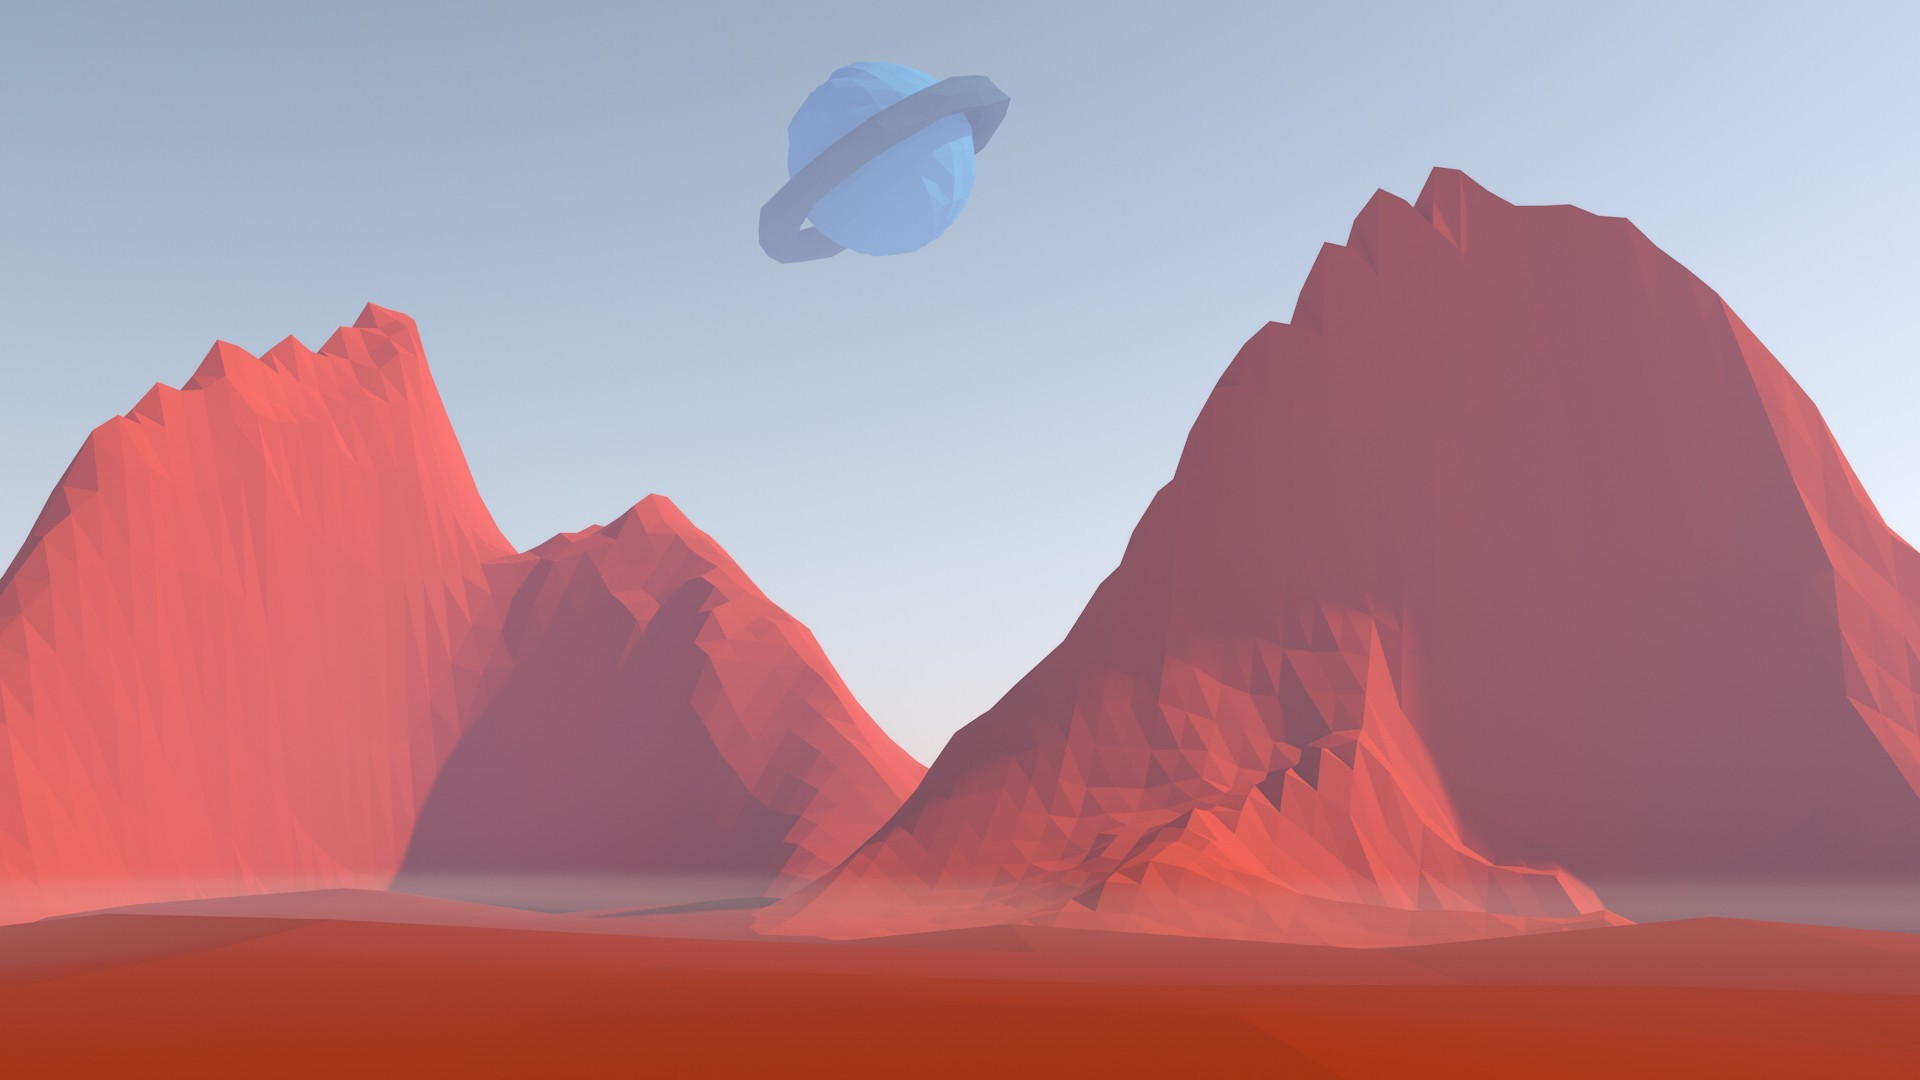 Animal Planet Wallpaper Hd Low Poly Mars Planet Space Wallpapers Hd Desktop And